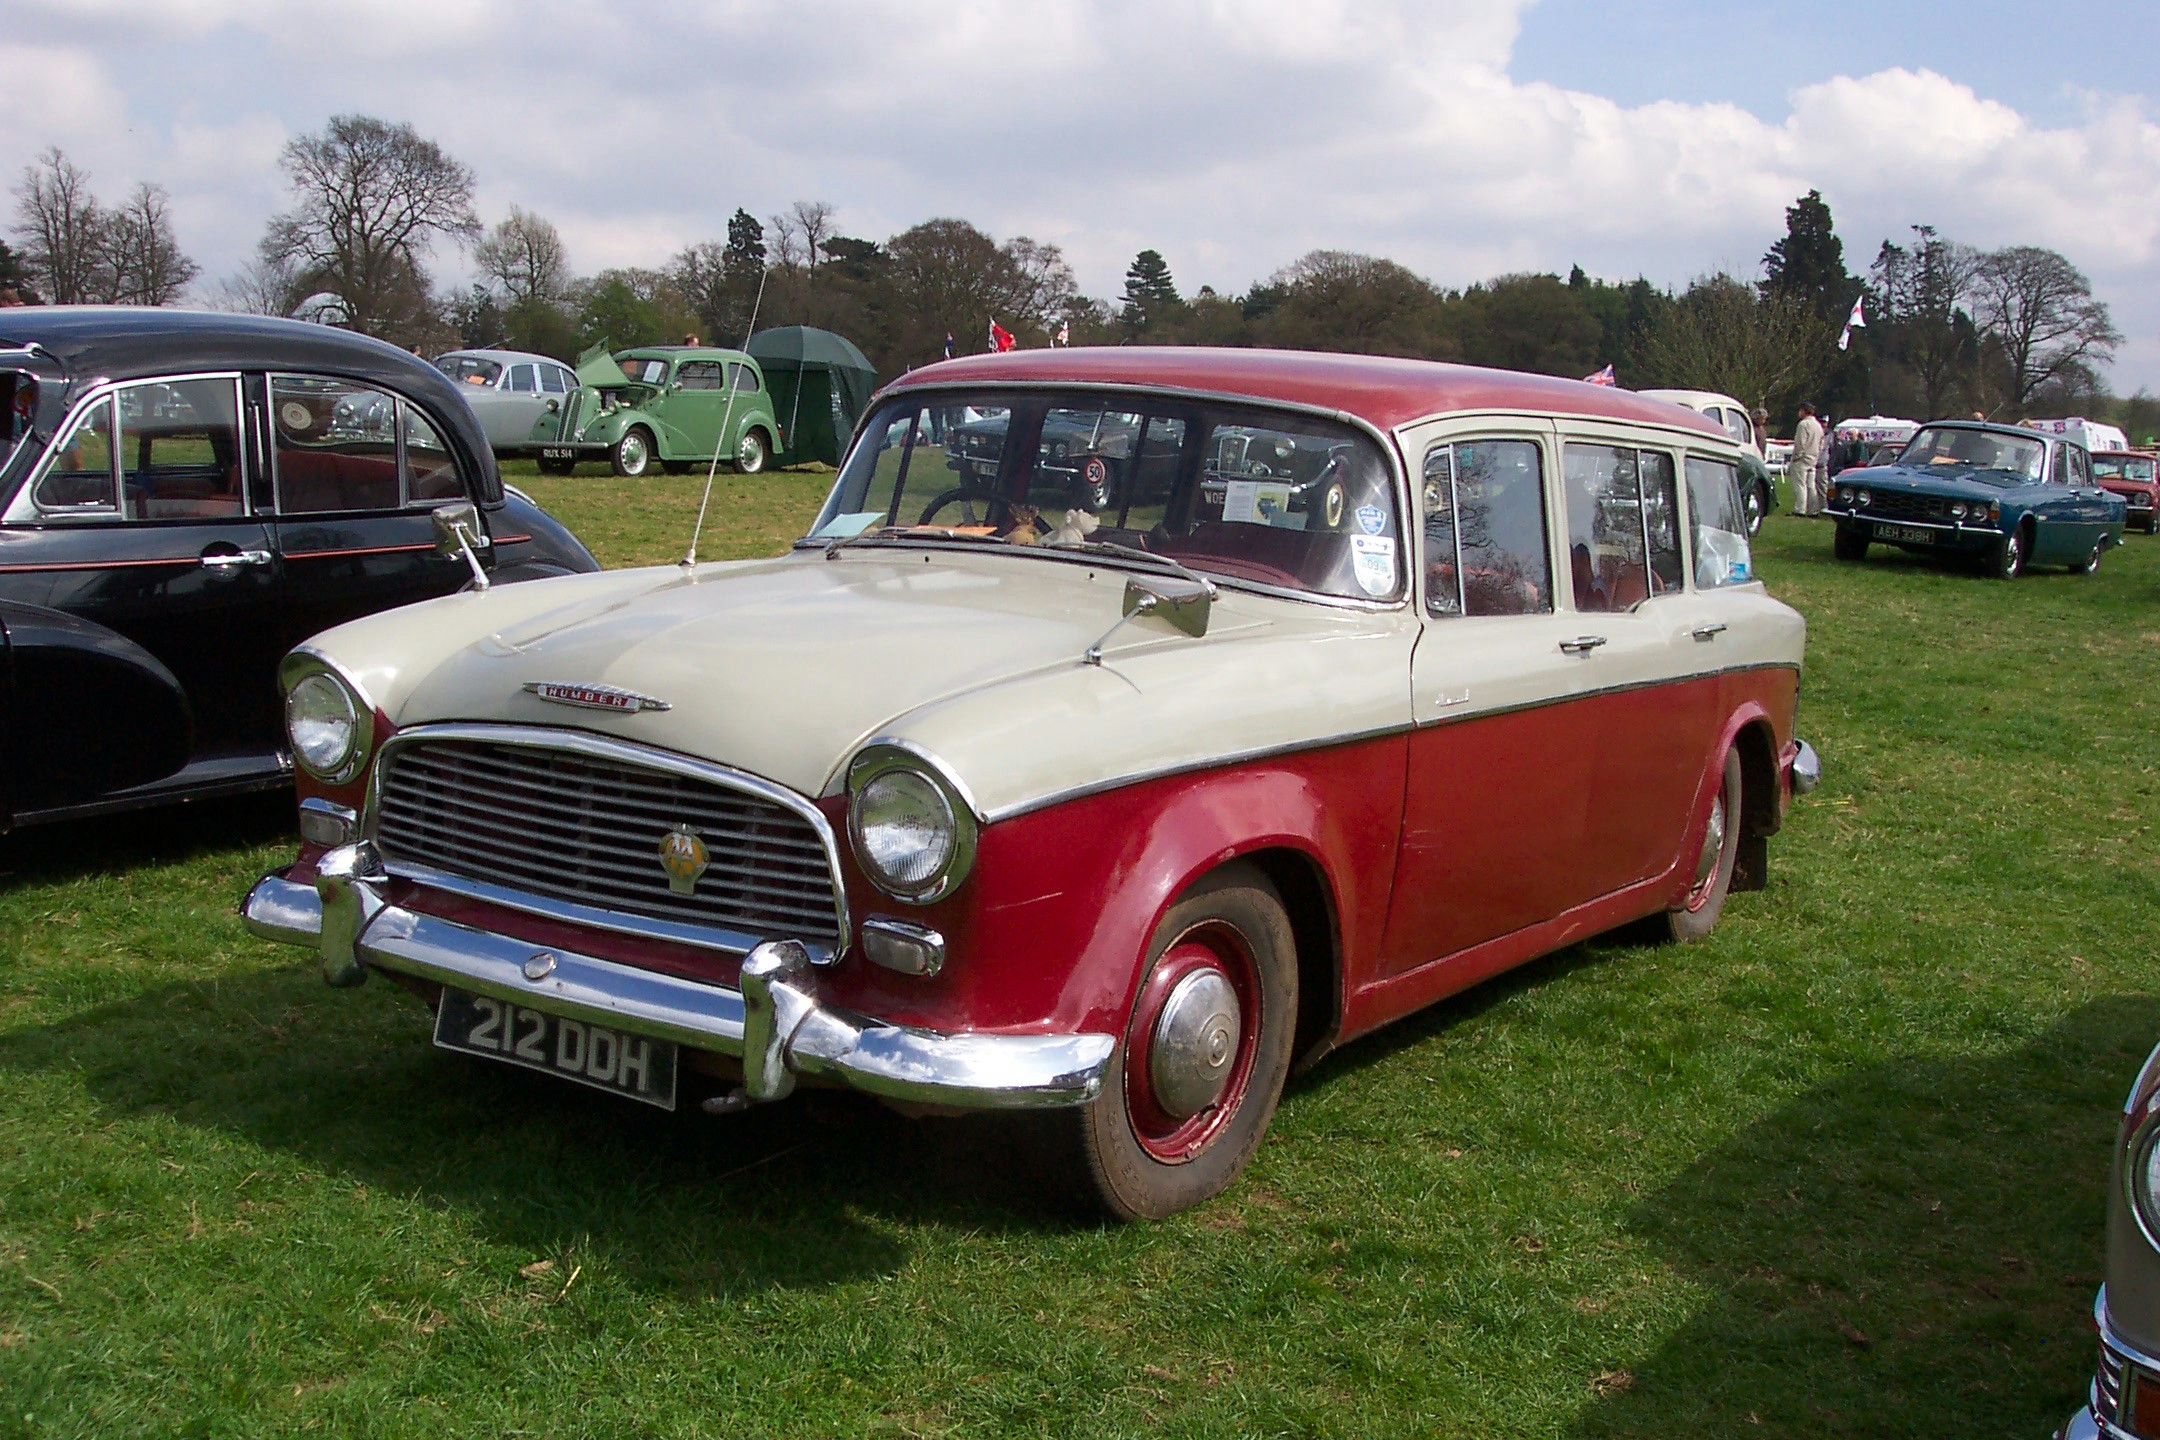 1963 Humber Hawk Series 3 Estate